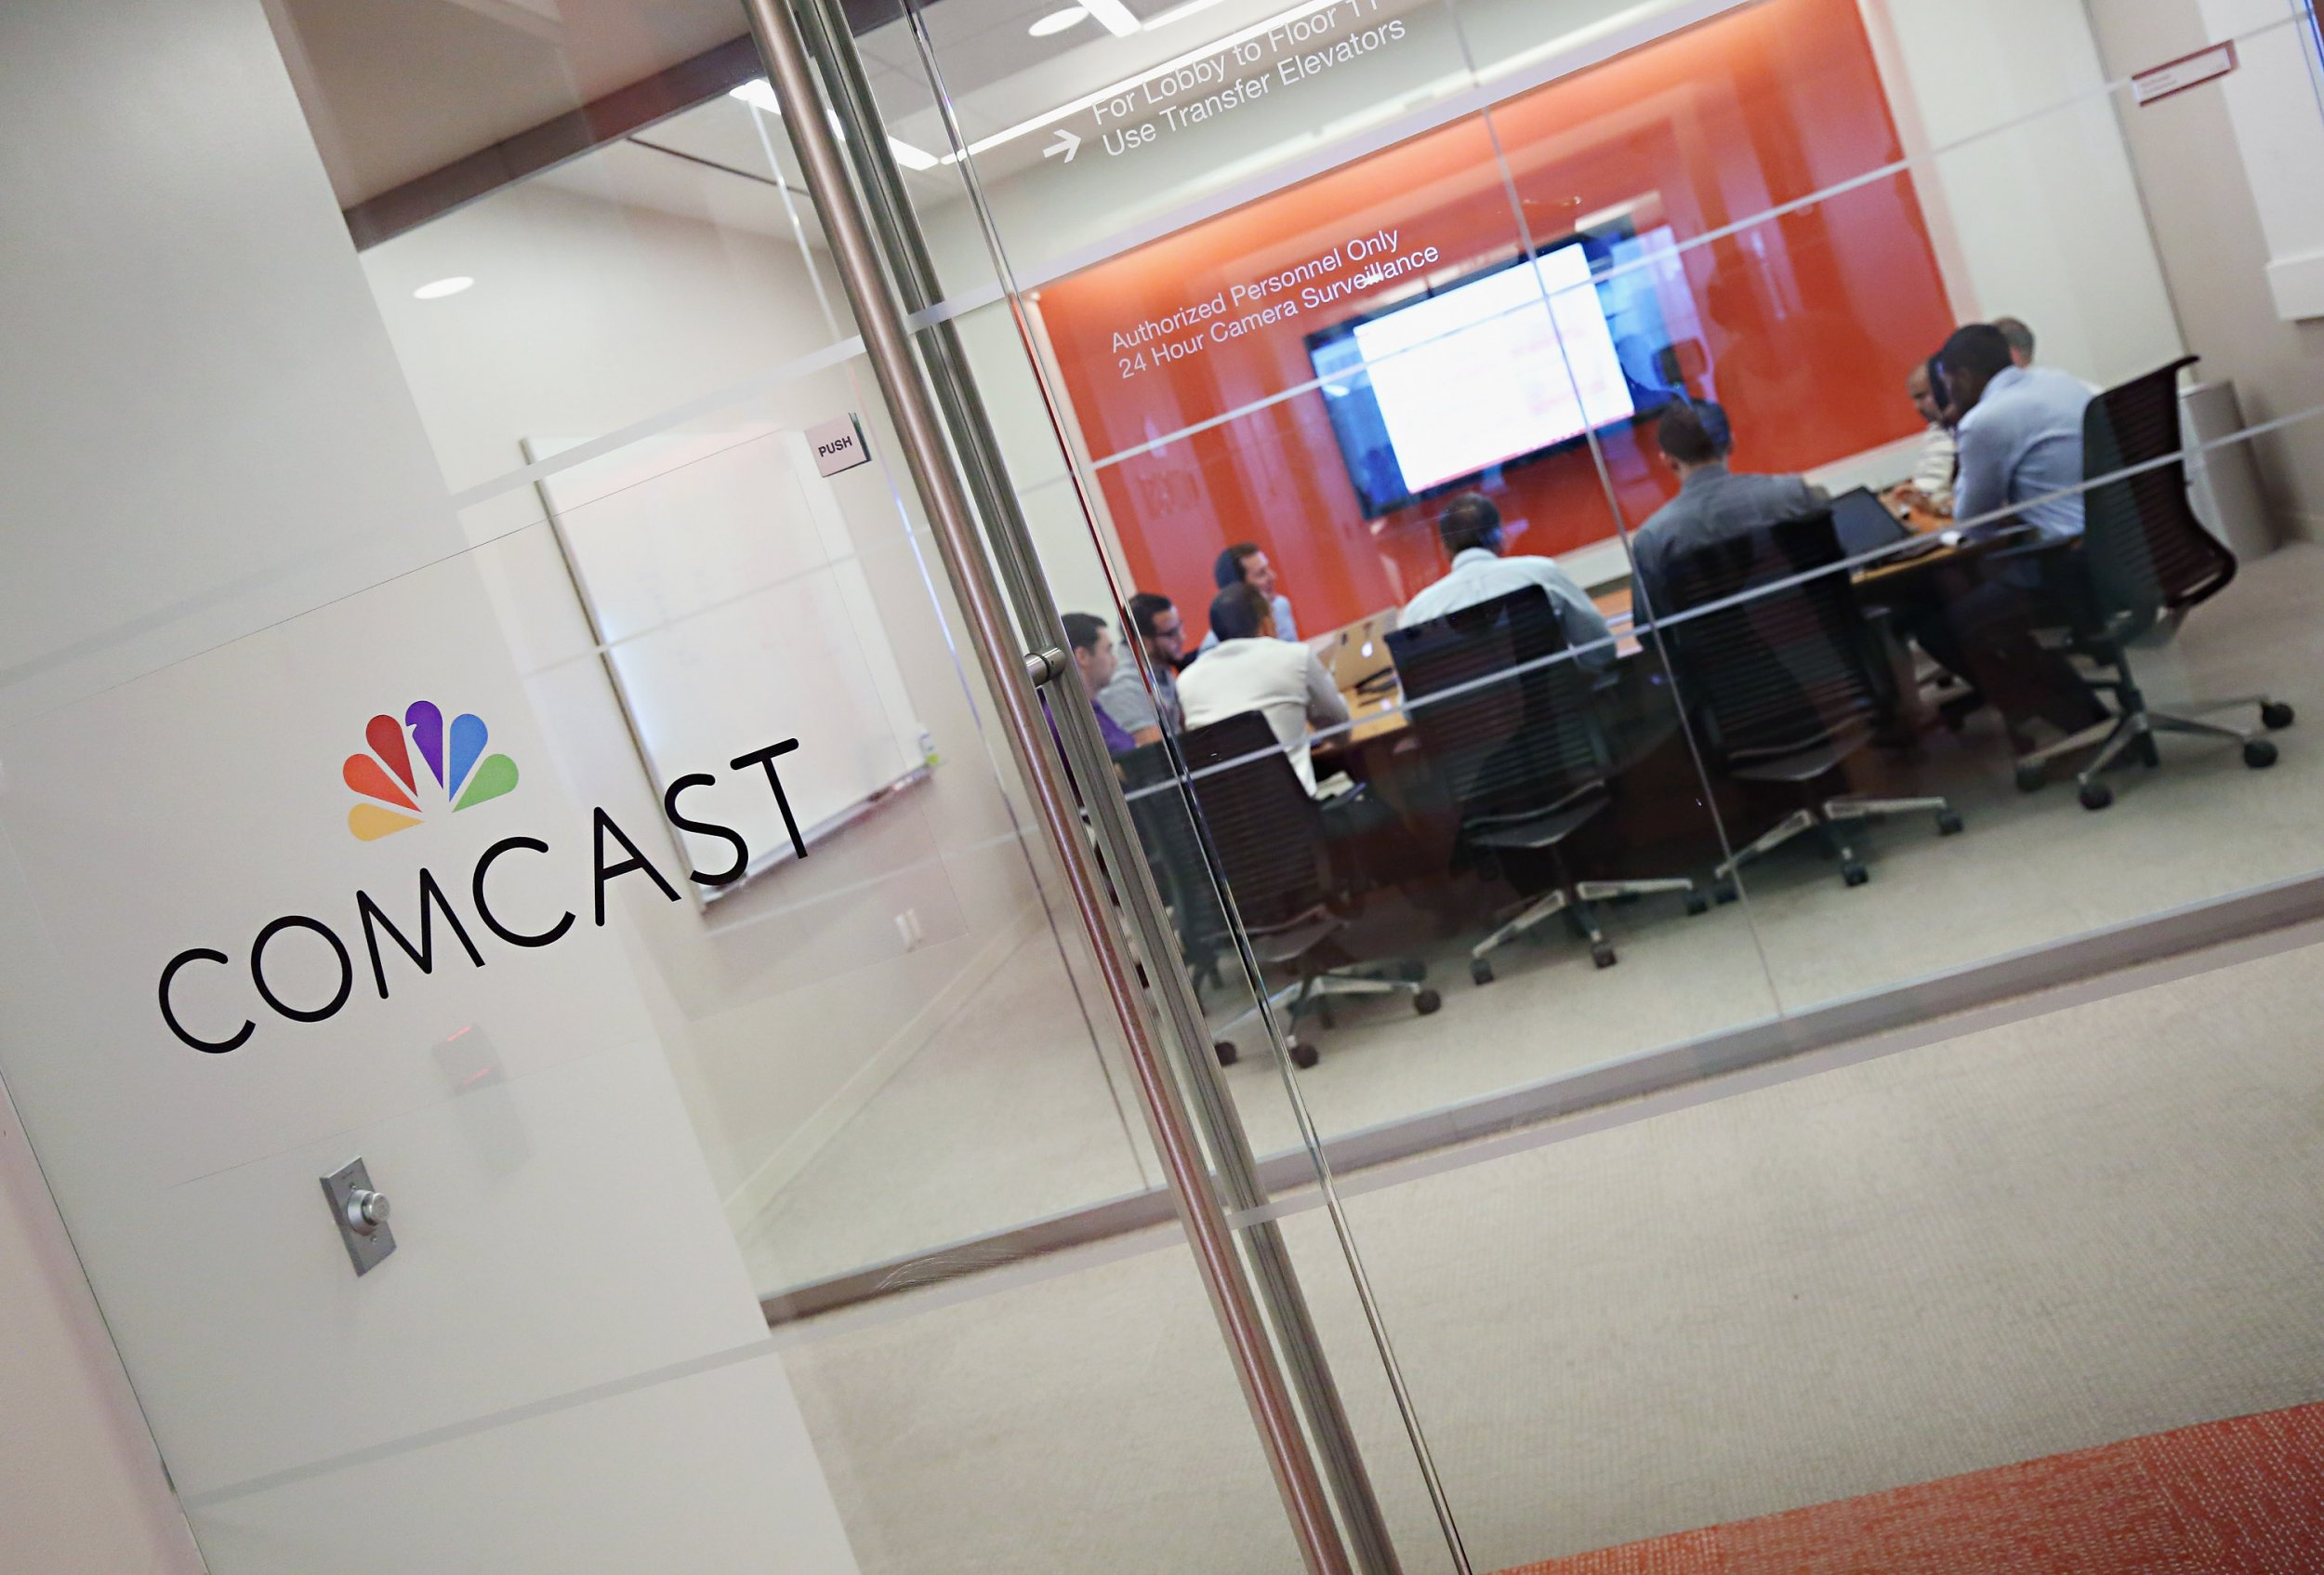 Comcast Fired Hundreds of Workers Before Christmas Alongside